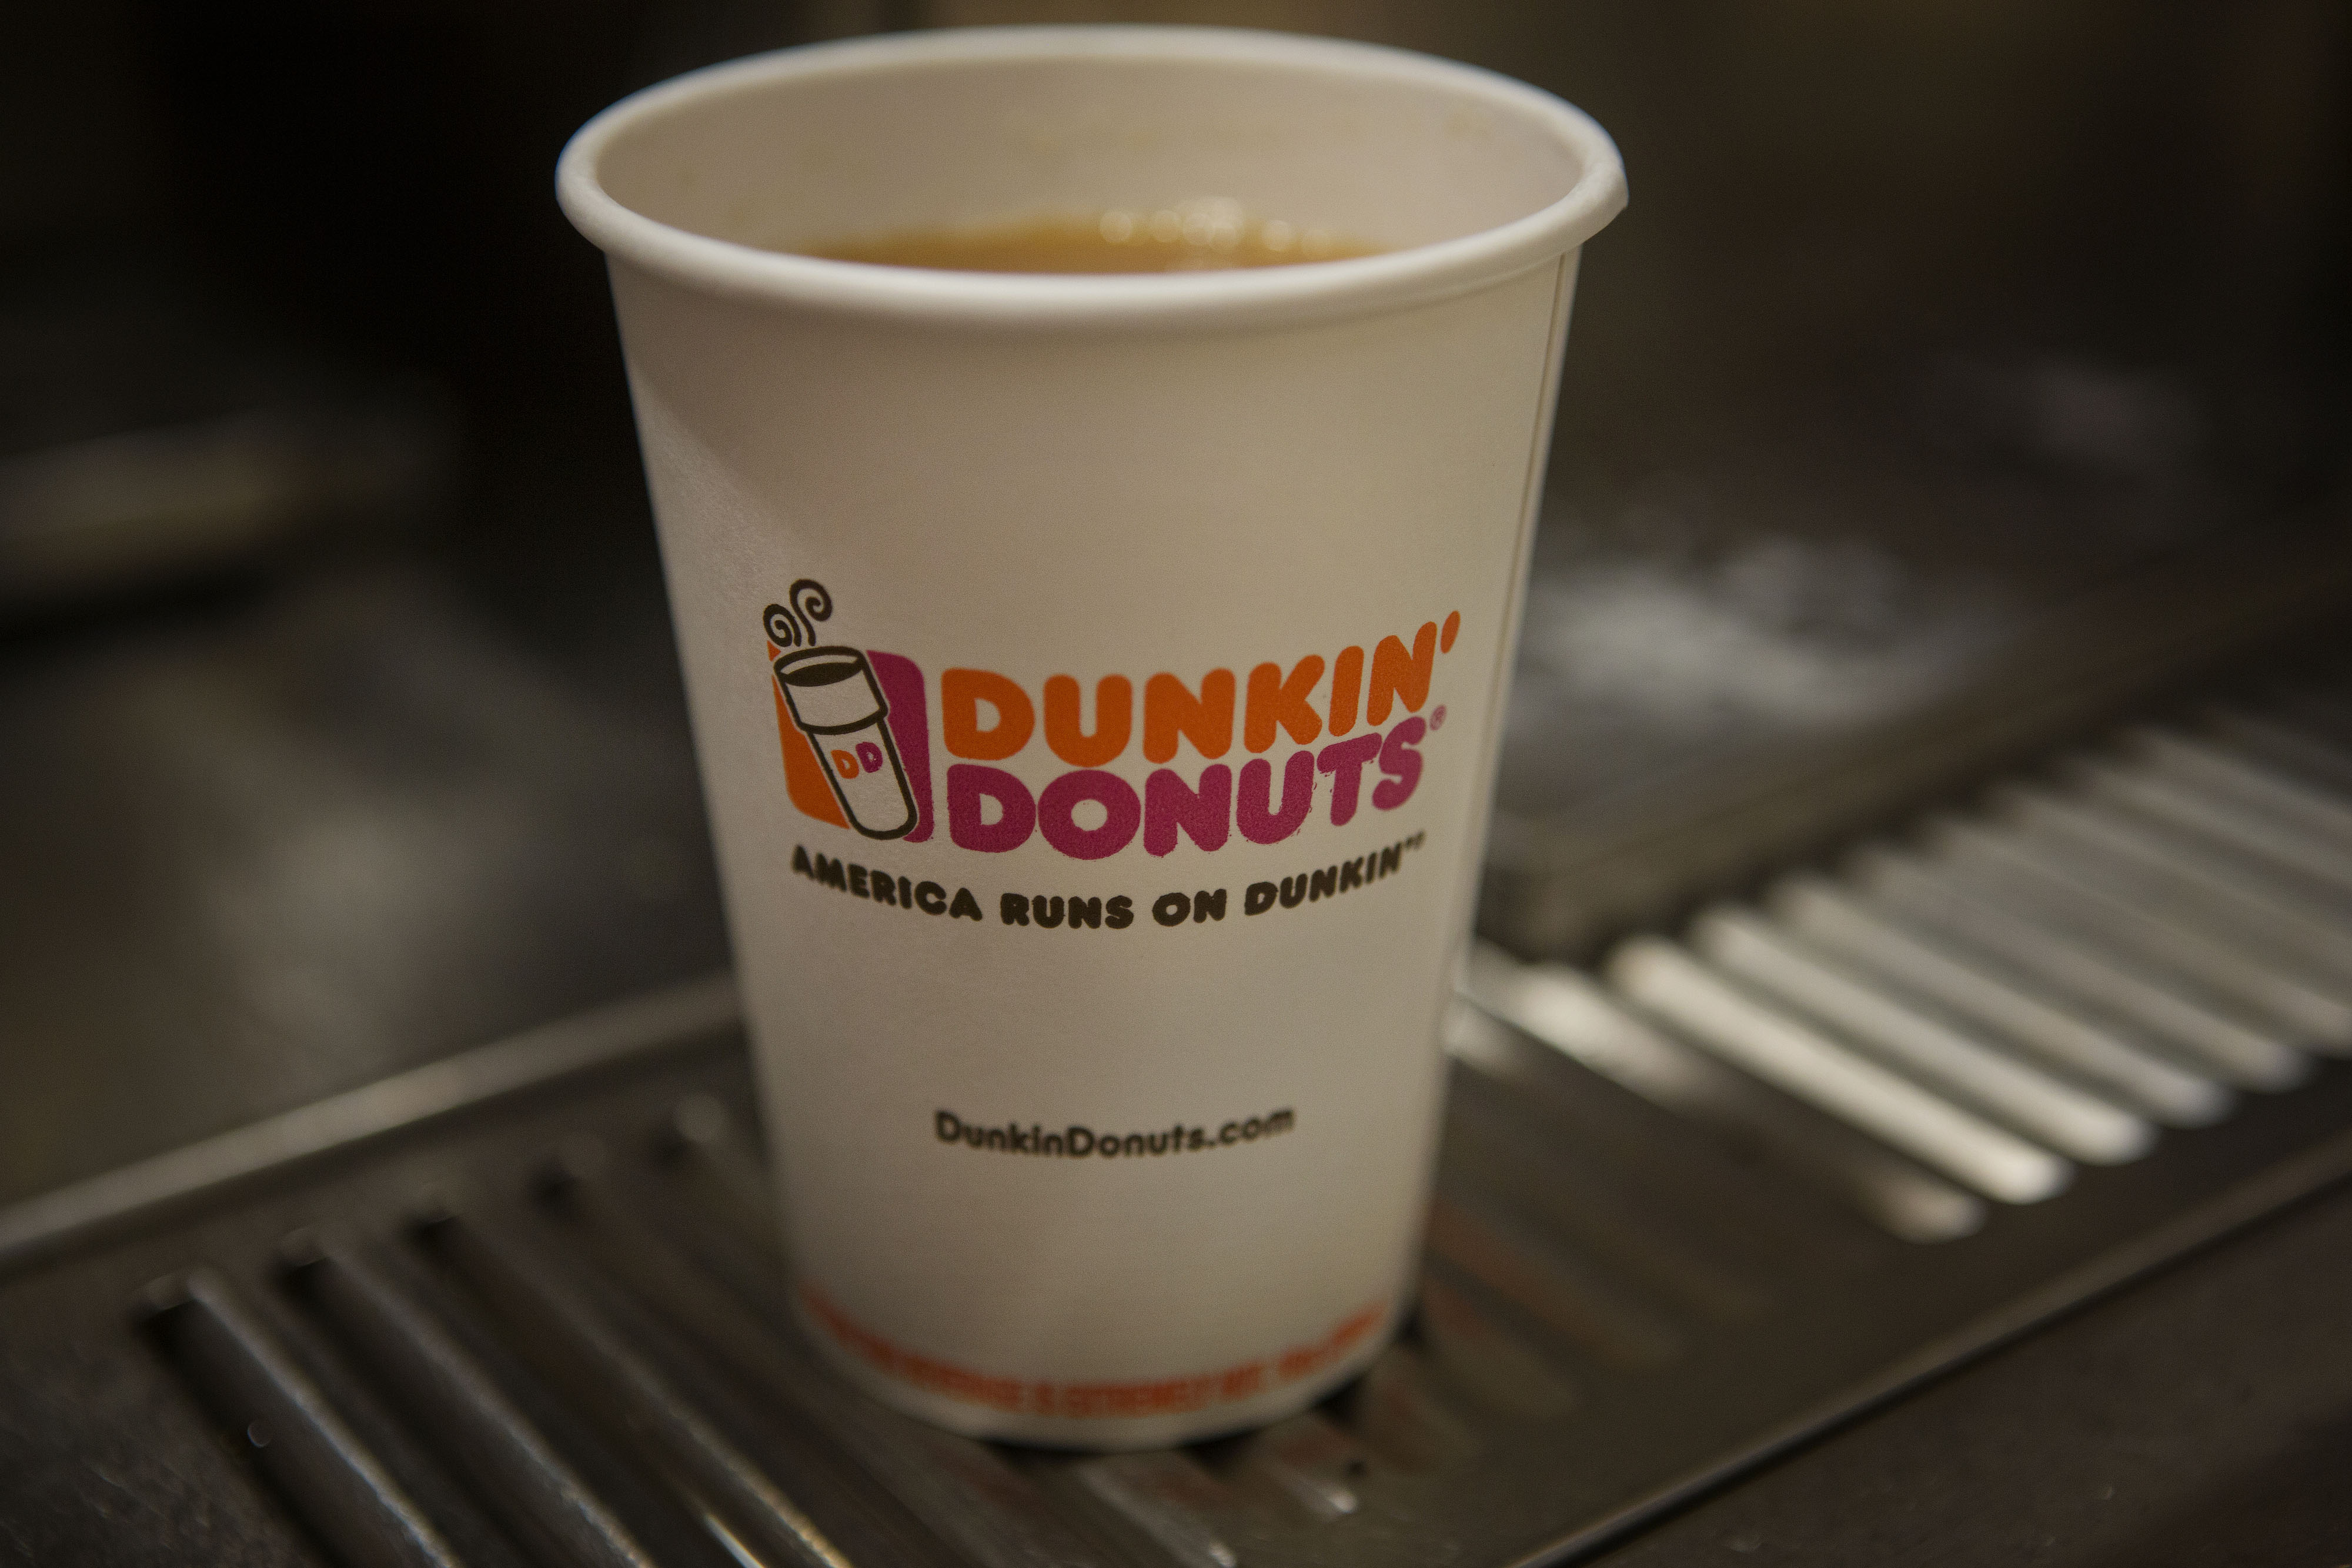 Signage is seen on a cup of coffee at a Dunkin Donuts Inc. restaurant in New York, U.S., on Tuesday, Feb. 24, 2014.